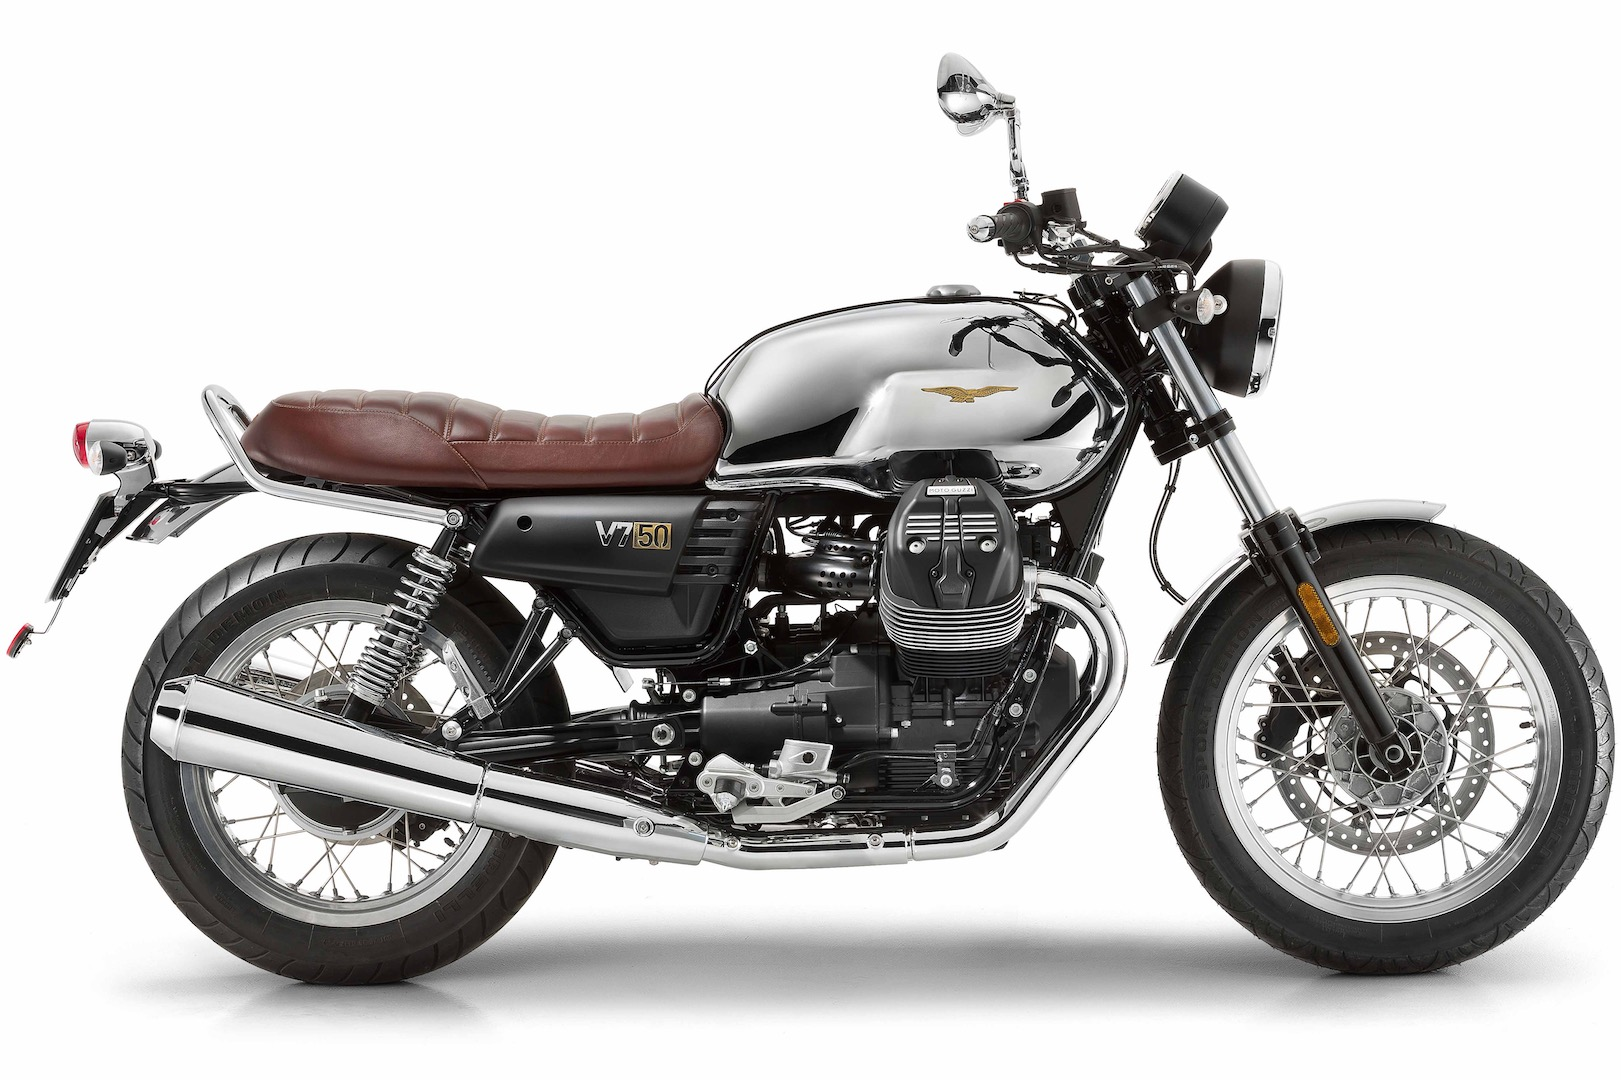 2017 Moto Guzzi V7 III Motorcycles First Look | 10 Fast Facts